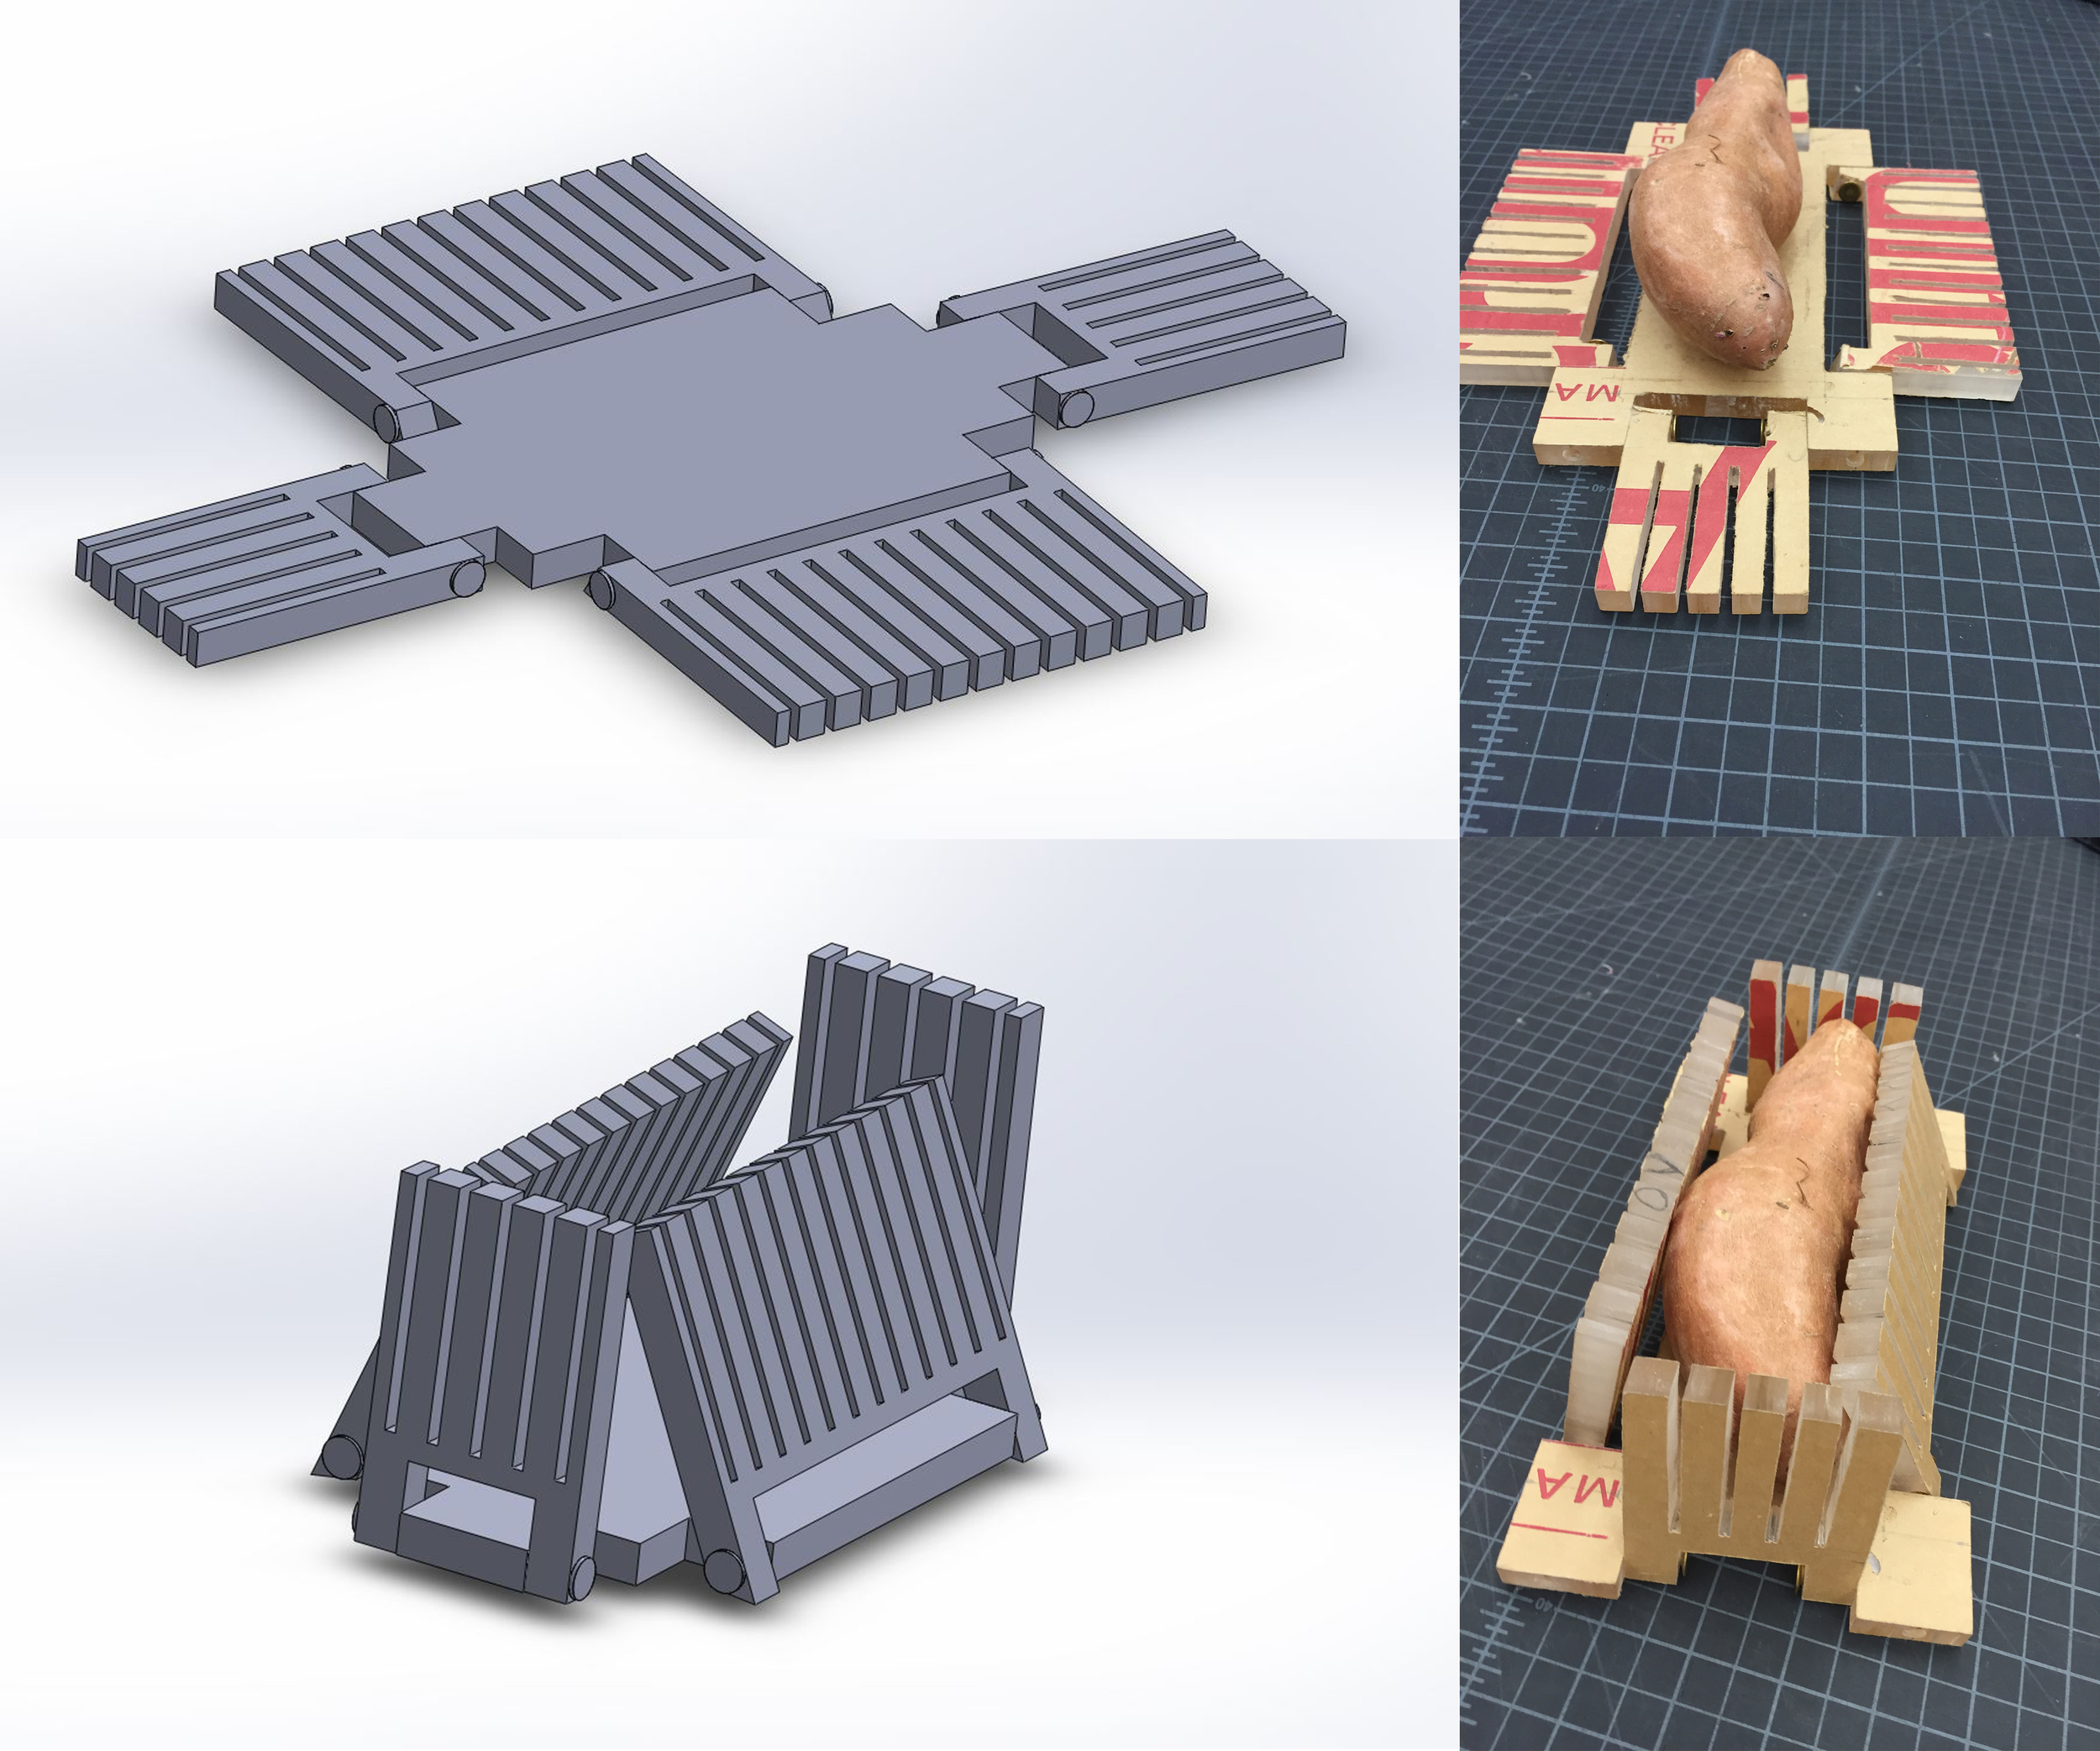 Next I created my own designs. The size of my designs was determined by the FDA specs for sweet potatoes. A major concern was ease of storage. I designed this model to fold flat so it could be stored with cutting boards. This shows a SolidWorks model of the design and a slightly altered prototype.